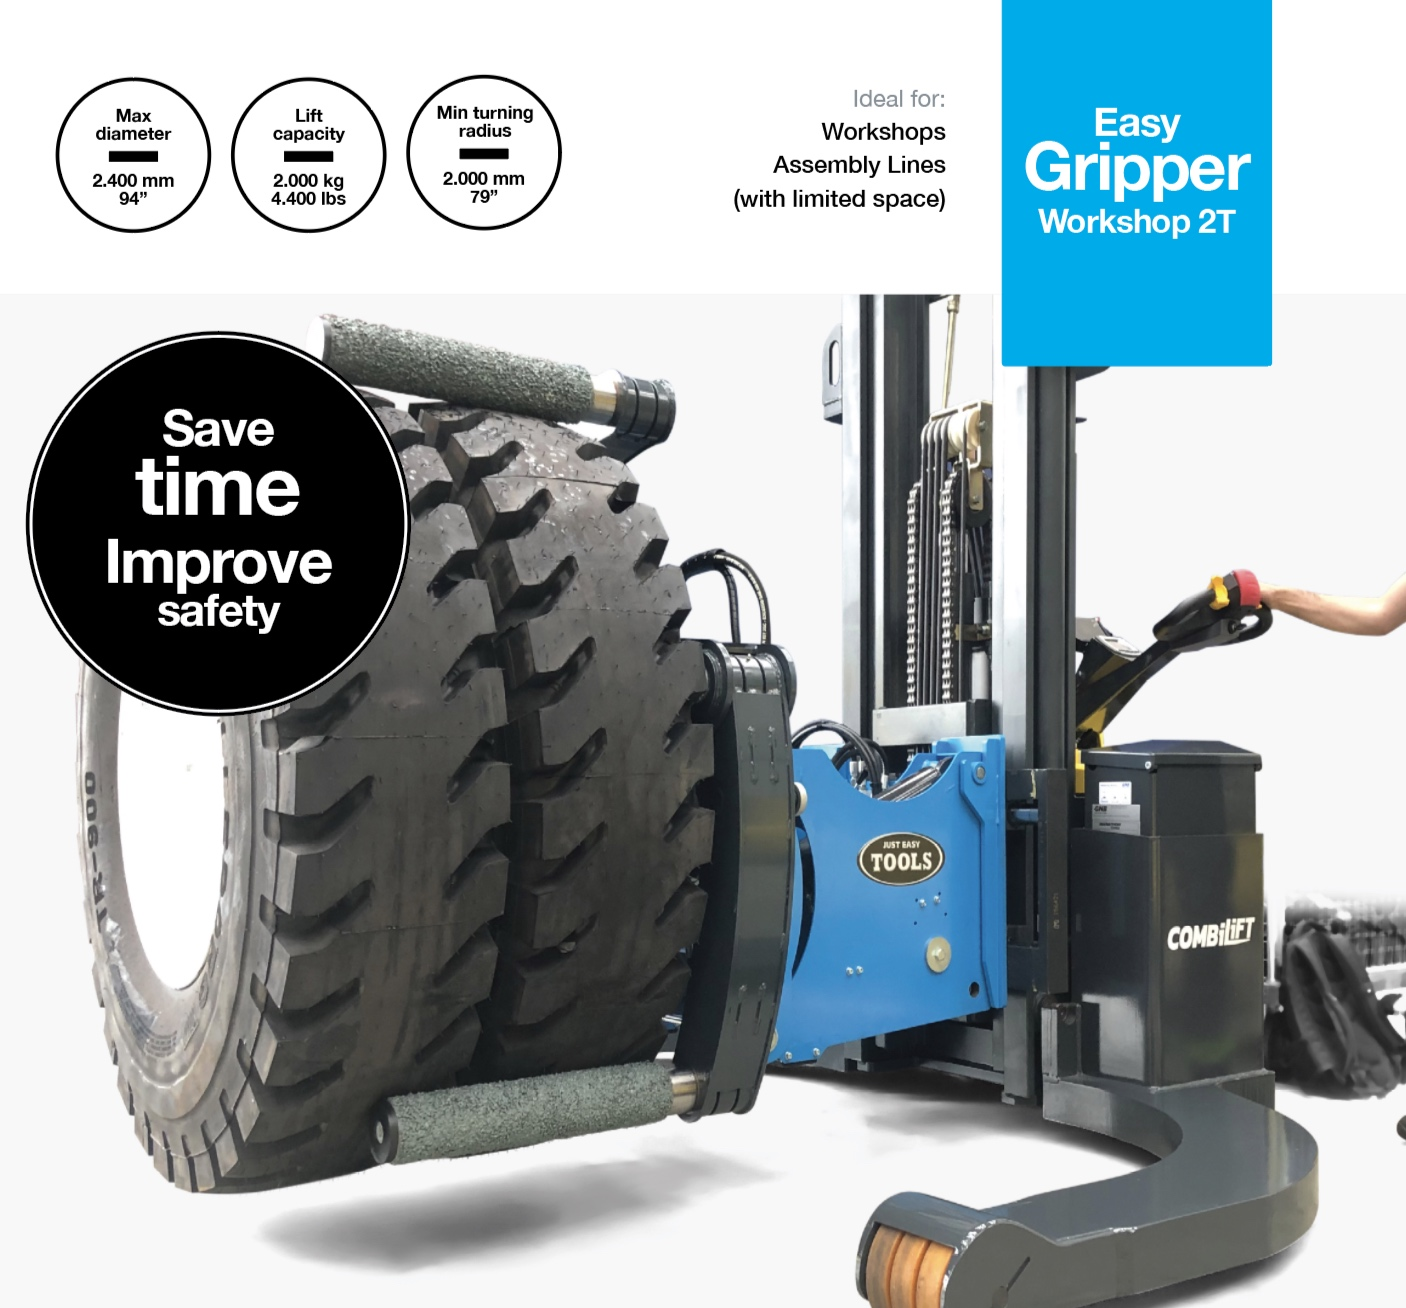 Easy GripperWorkshop 2T - Professional tyre handling tools for workshops and assembly lines